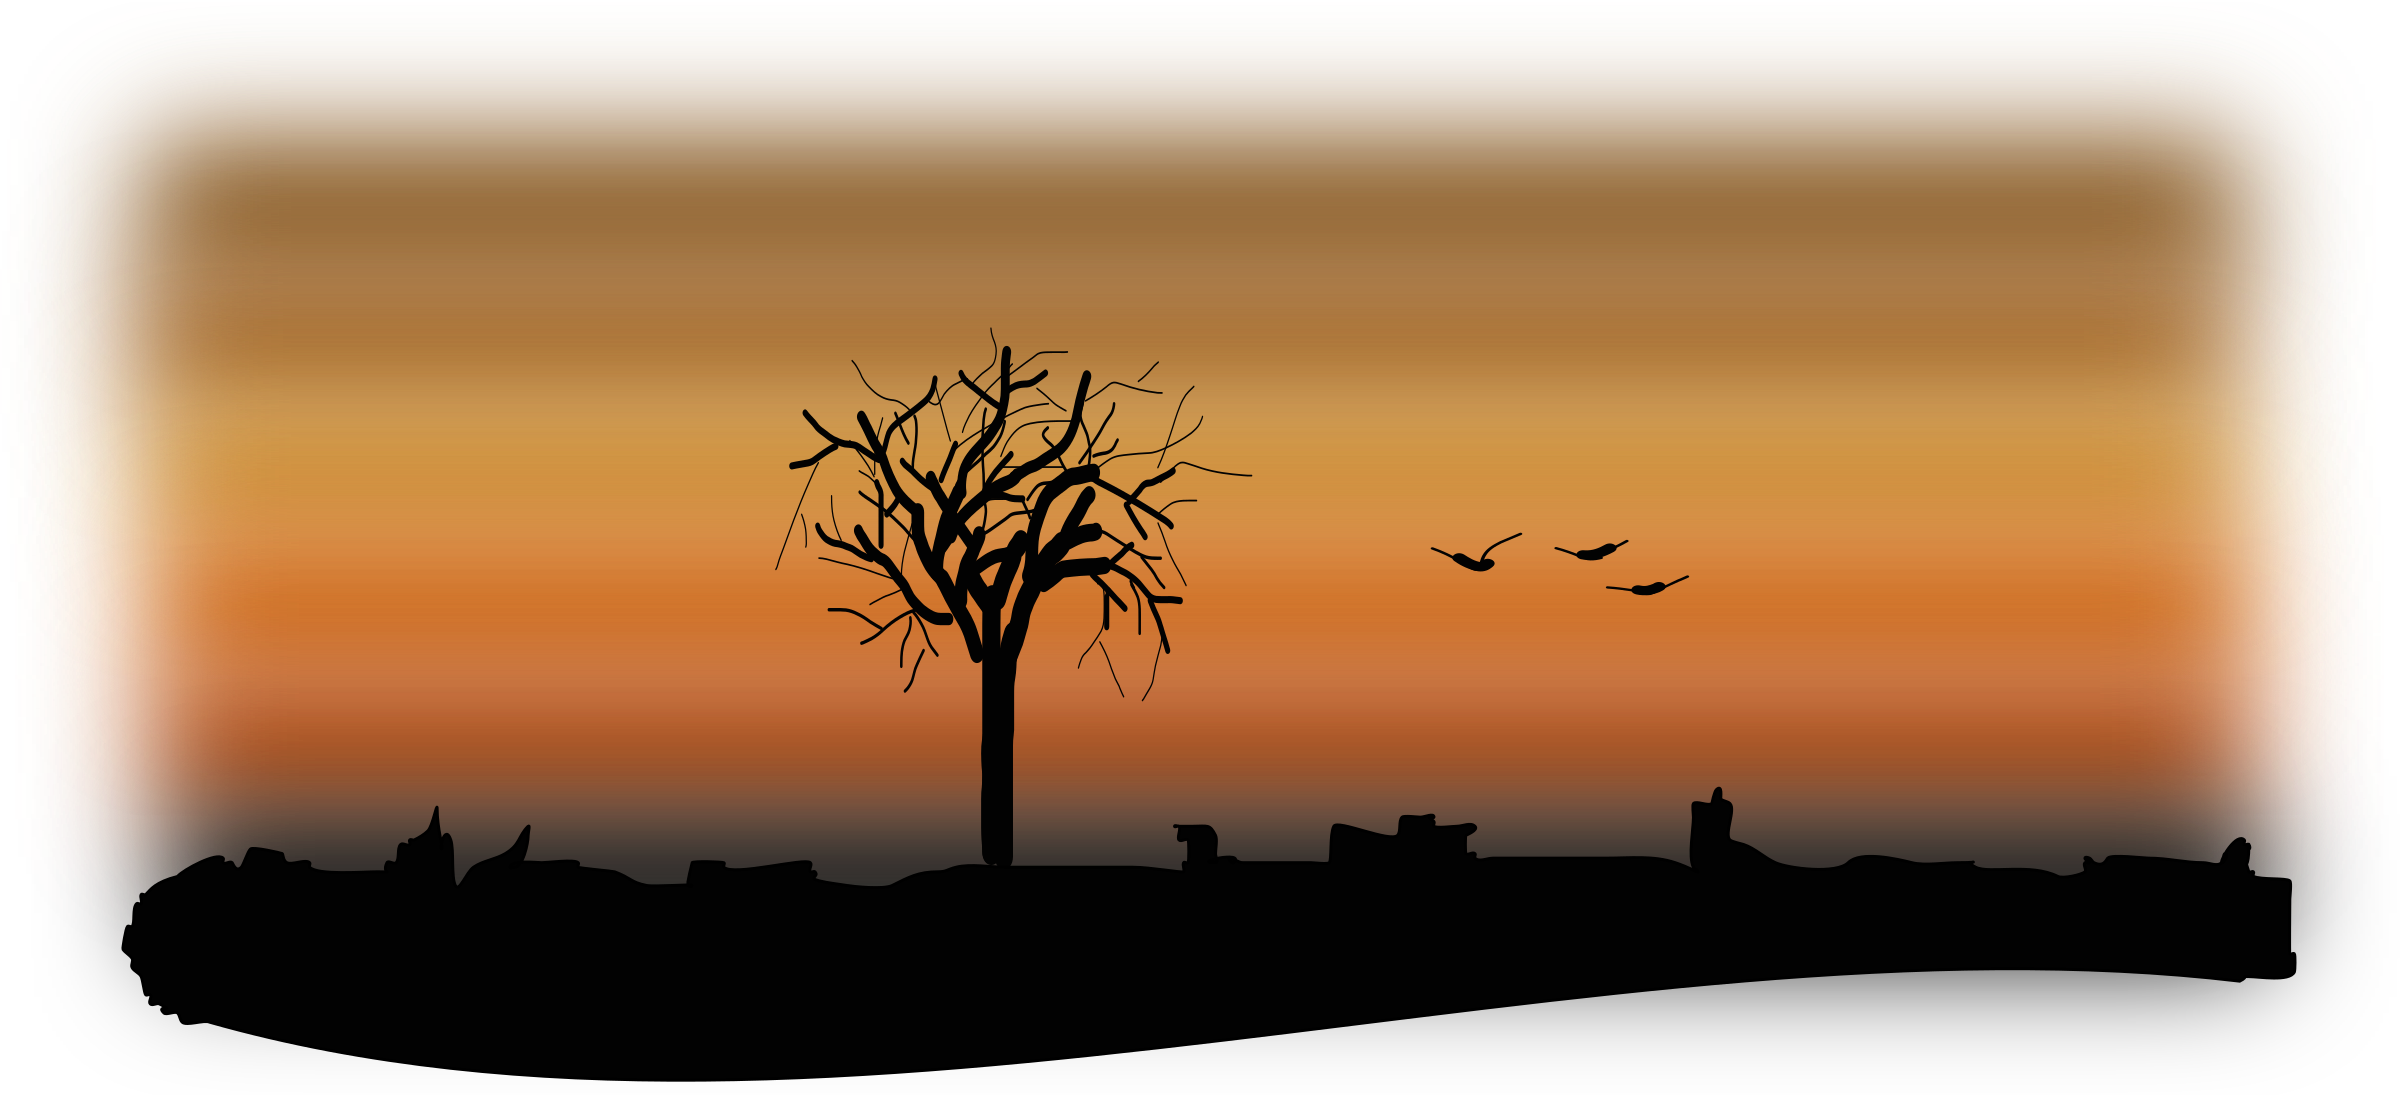 Sunset clipart sunset landscape. Fall silhouette big image